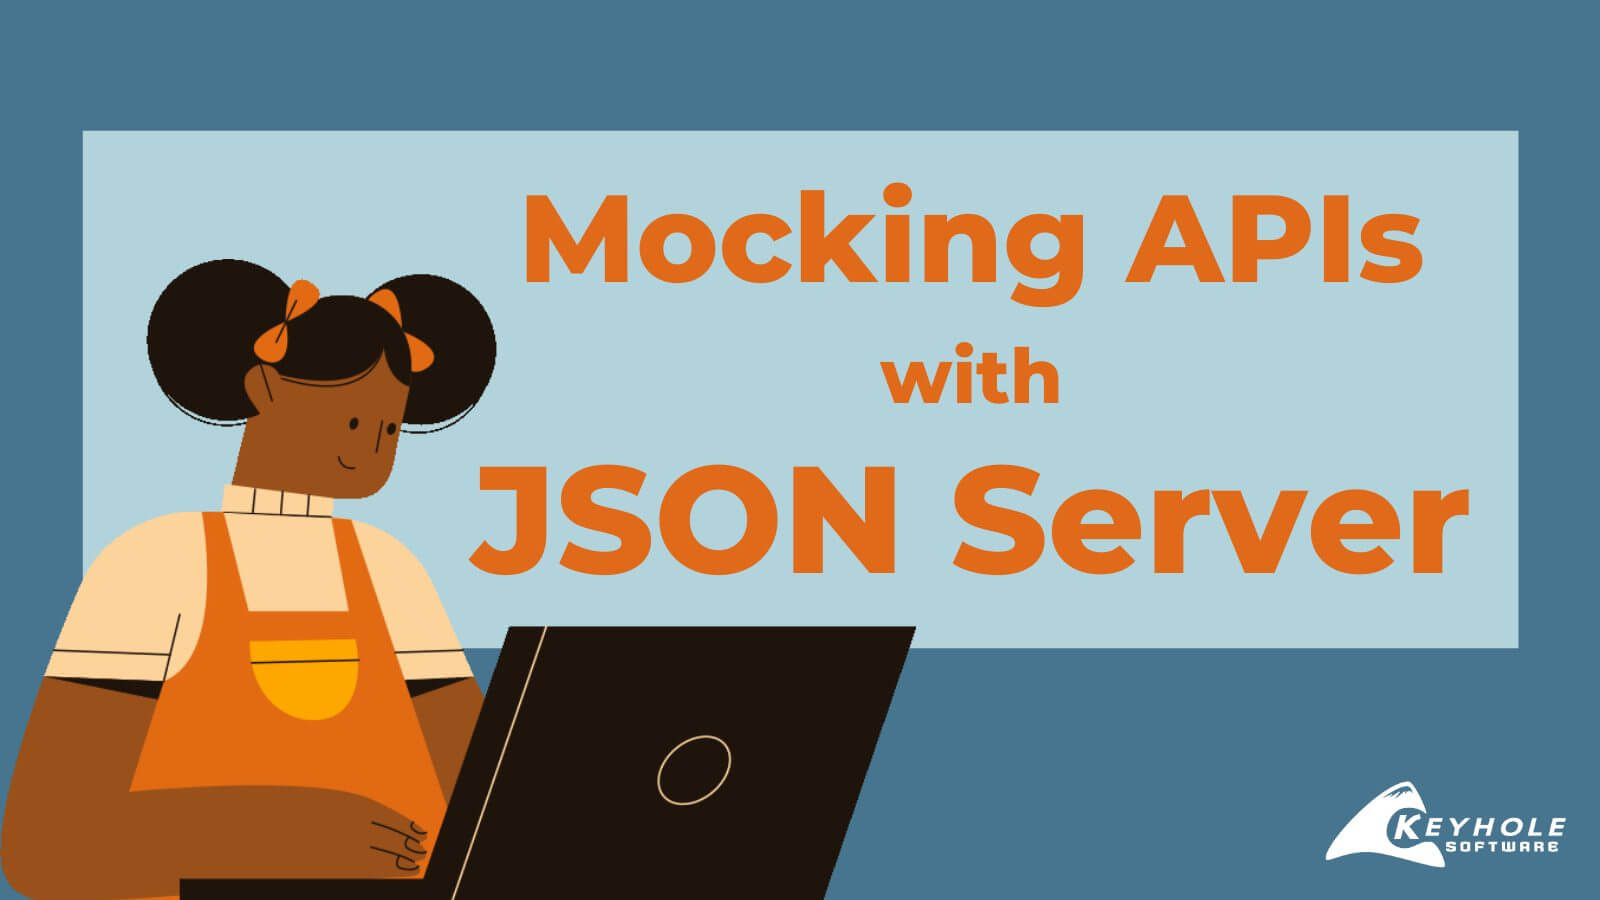 JSON Server for API Mocking